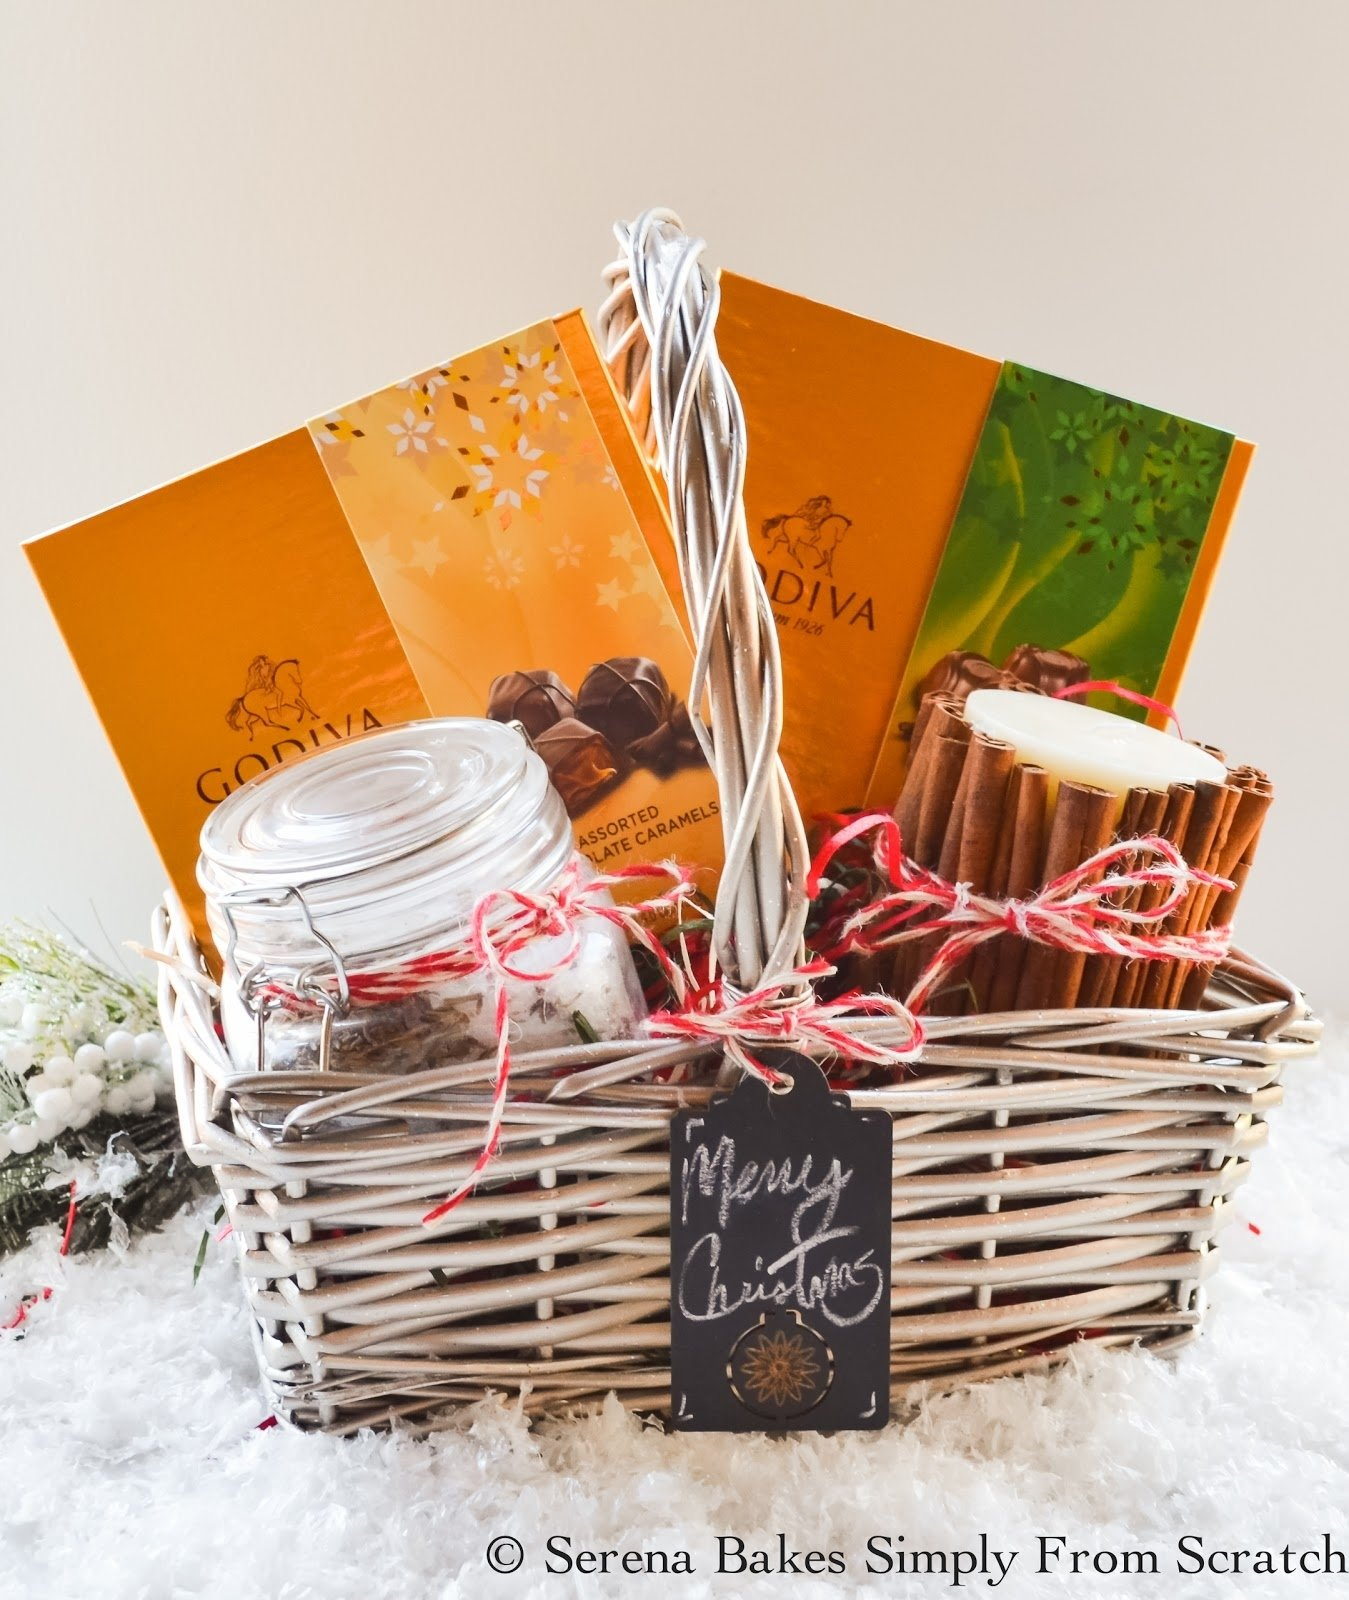 10 Great Homemade Holiday Gift Basket Ideas holiday gift basket ideas serena bakes simply from scratch 2 2020